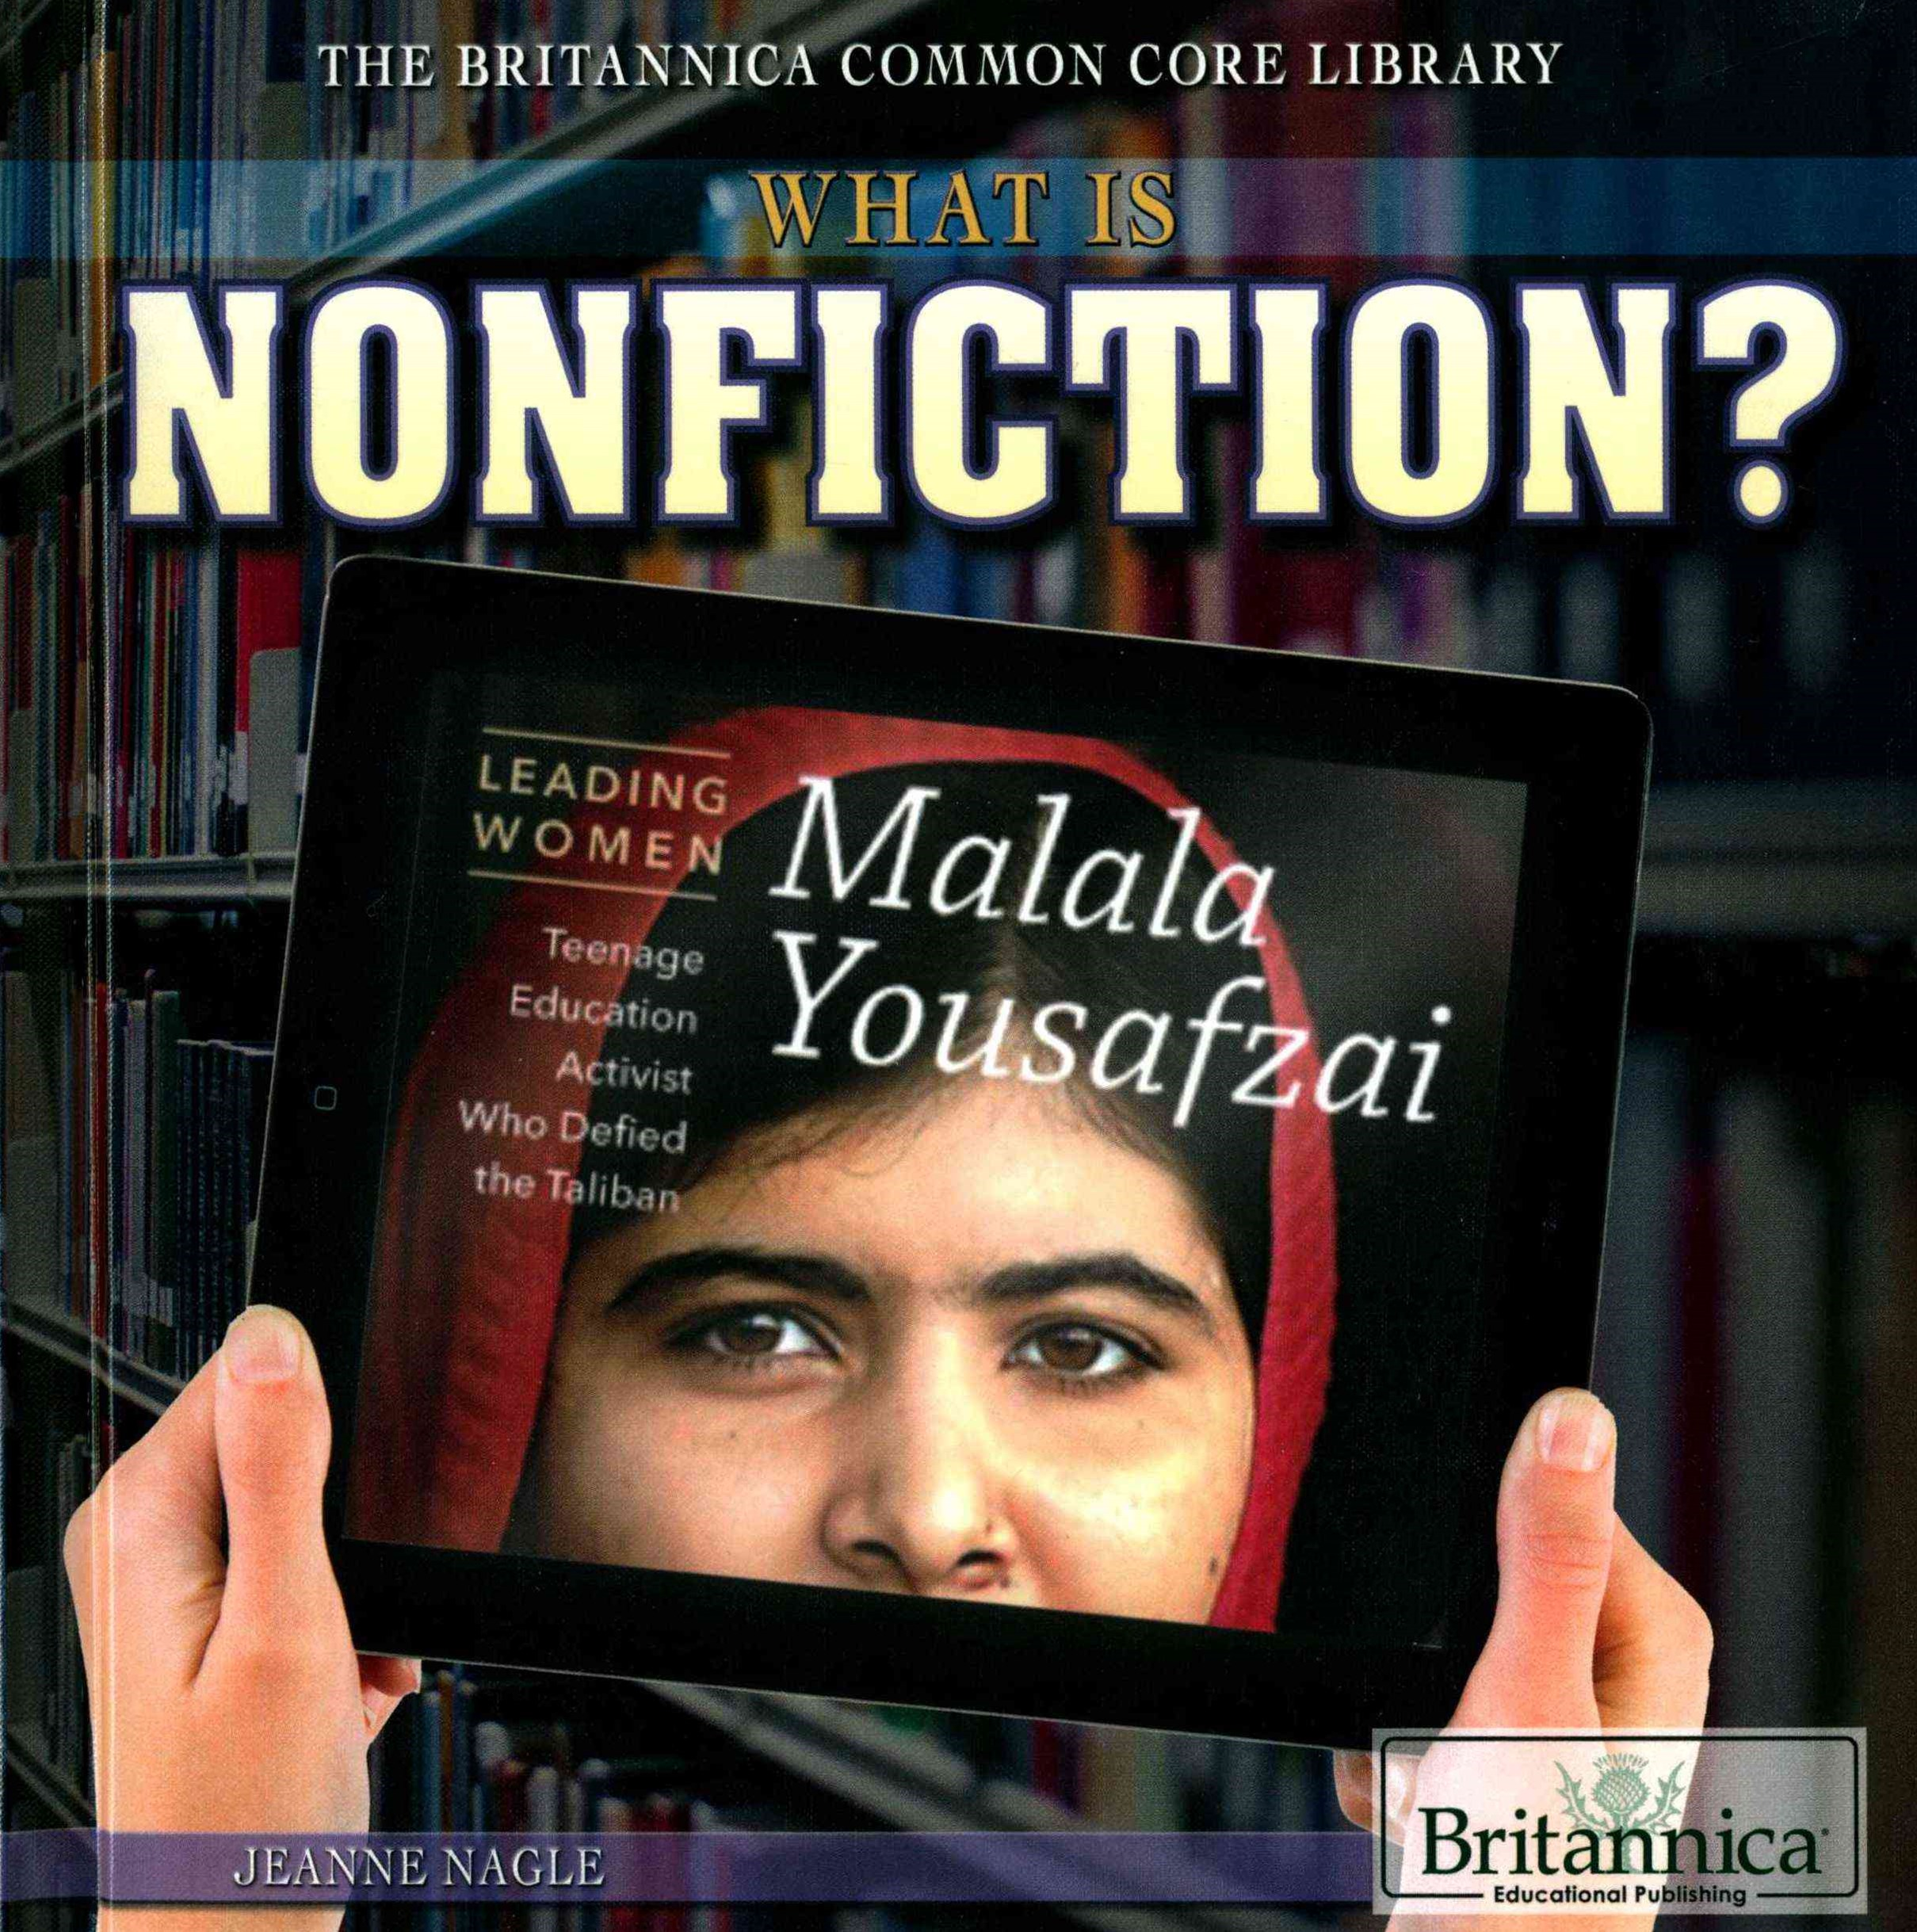 What Is Nonfiction?